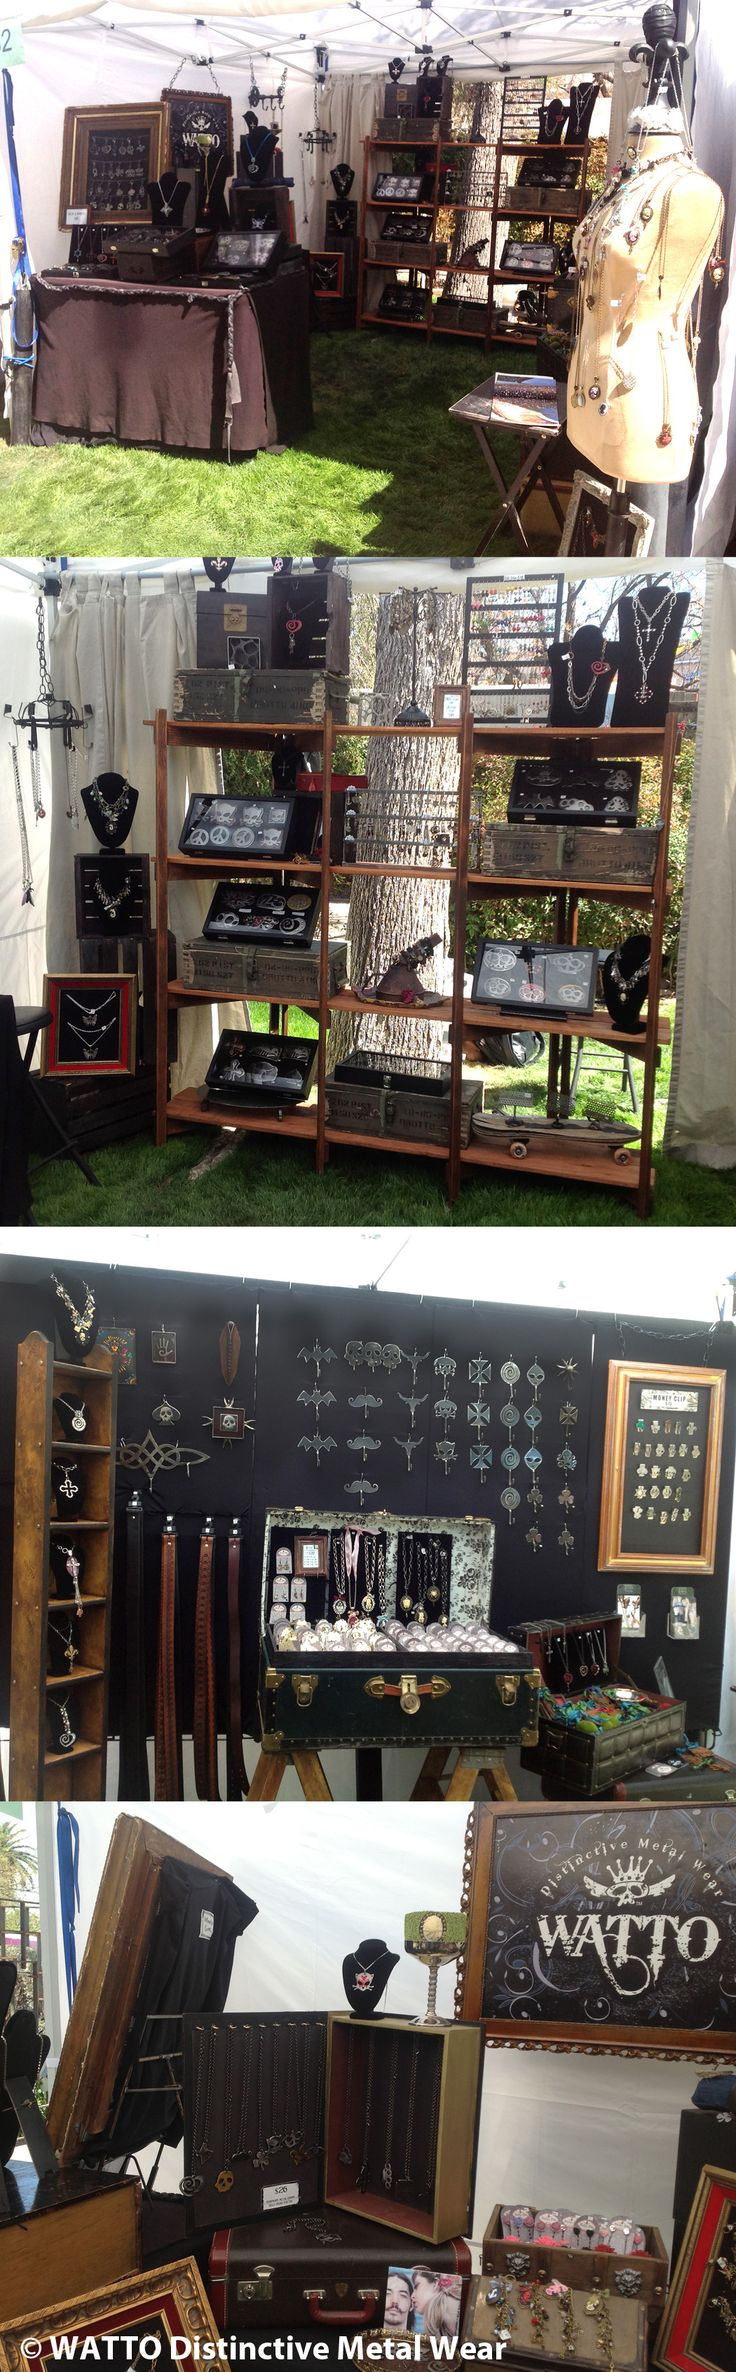 WATTO Distinctive Metal Wear booth setup #vendor displays #craft booth # art booth  www.facebook.com/...